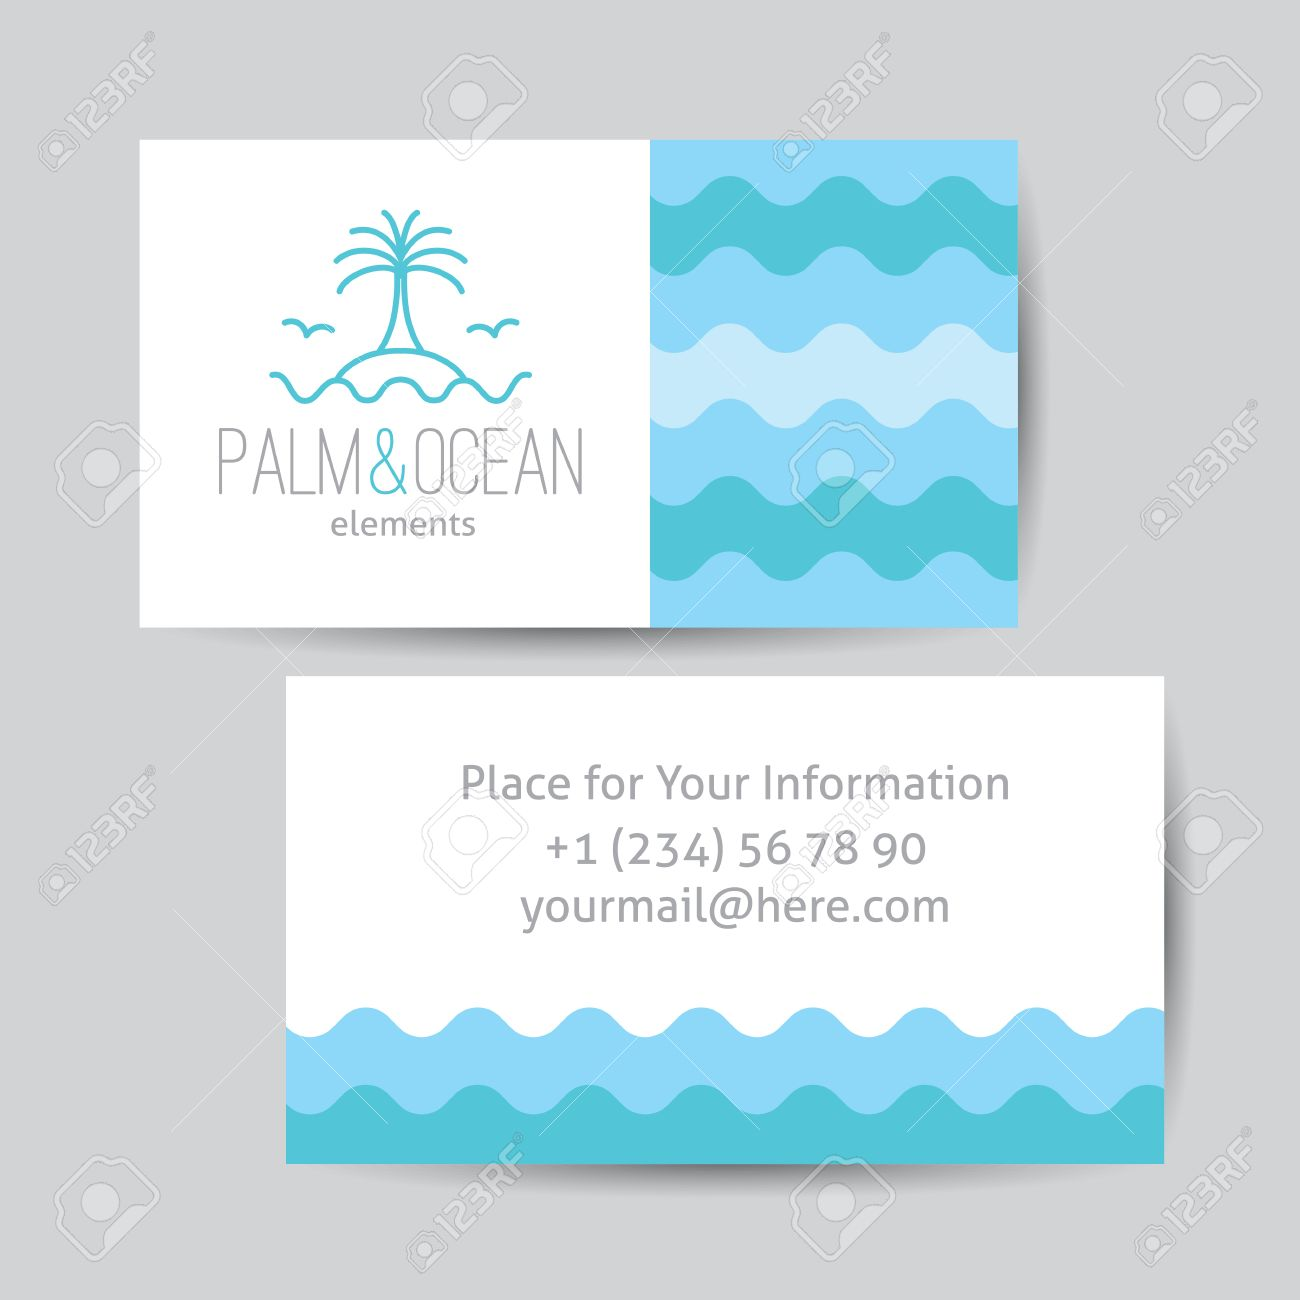 Business Card Template For Travel Agency. Palm, Seagulls, Island ...